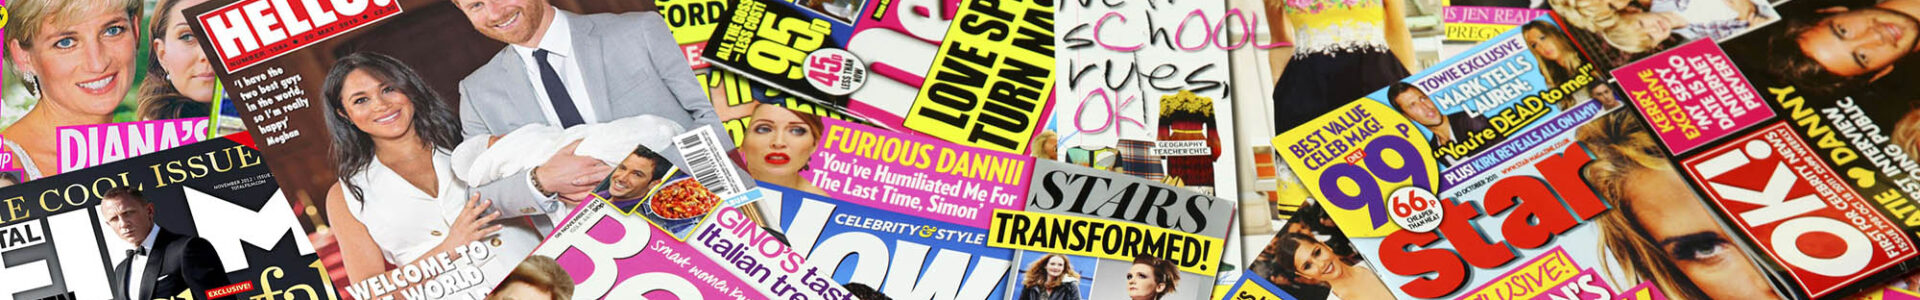 Category: <span>OK! Magazine Back Issues</span>